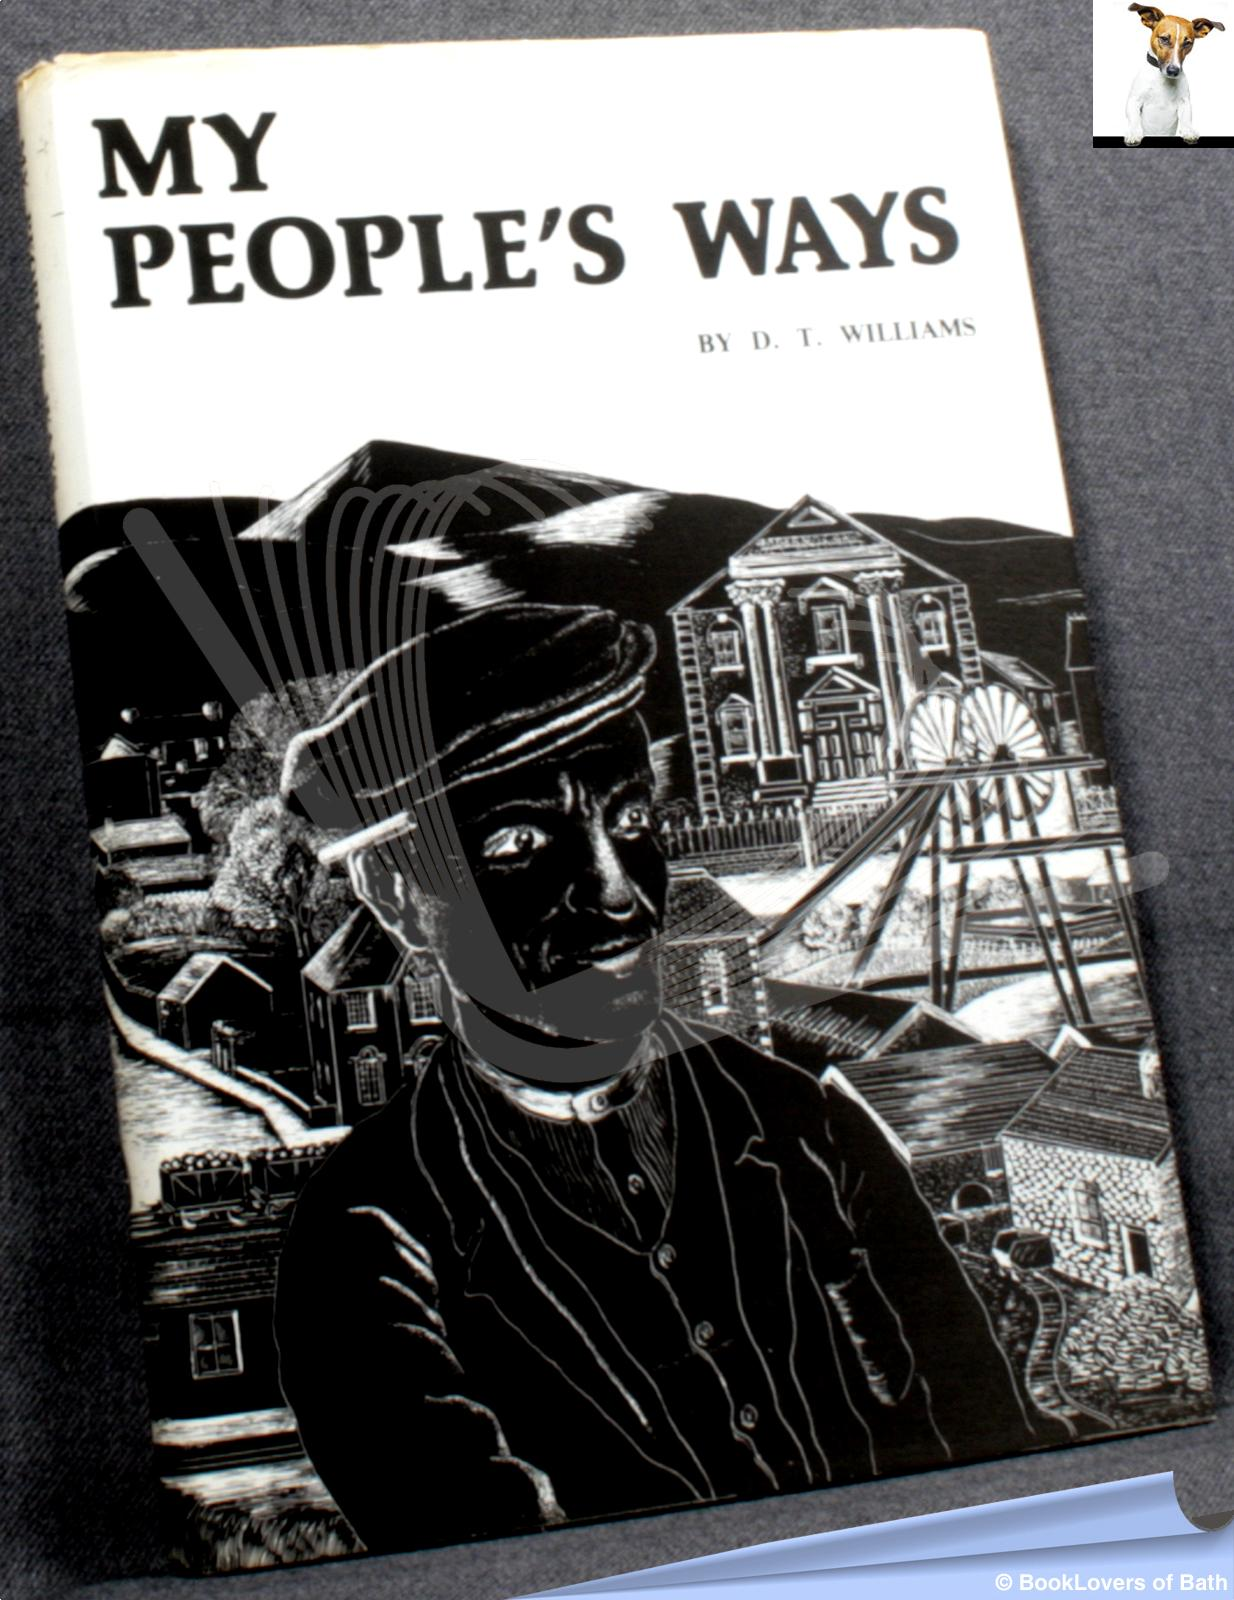 My People's Ways: An Anthology of the Works of D.T. Williams, Rhymney - D. T. [David Thomas] Williams